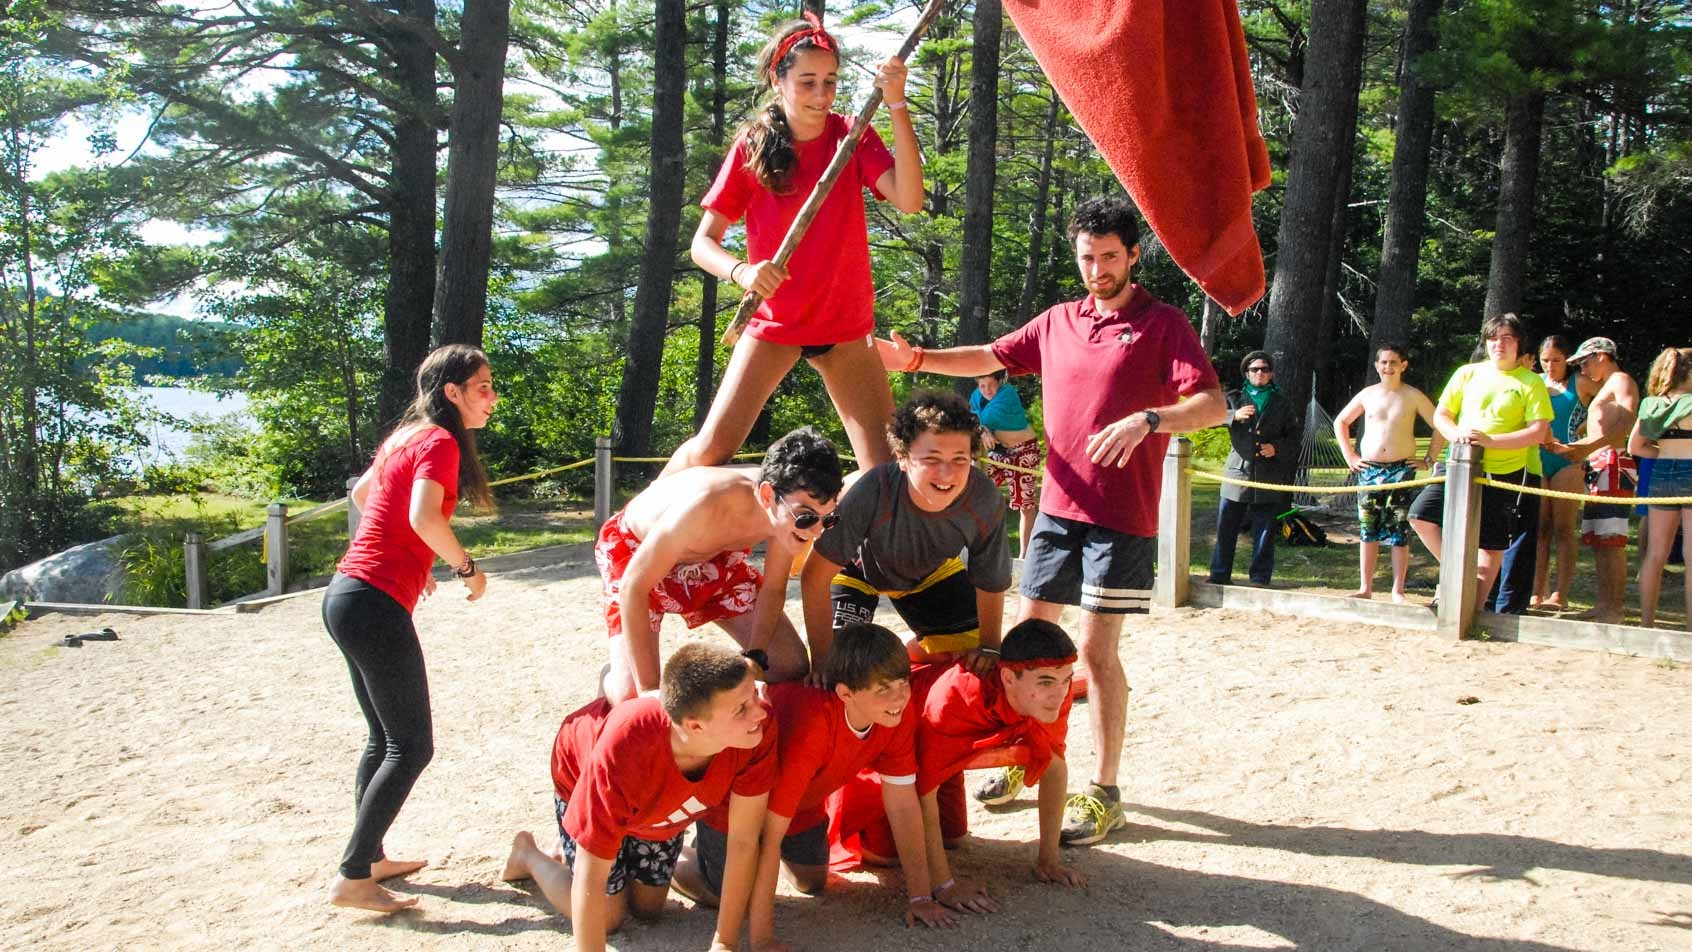 Contact Camp Kingswood | JCC Greater Boston |Camp Kingswood